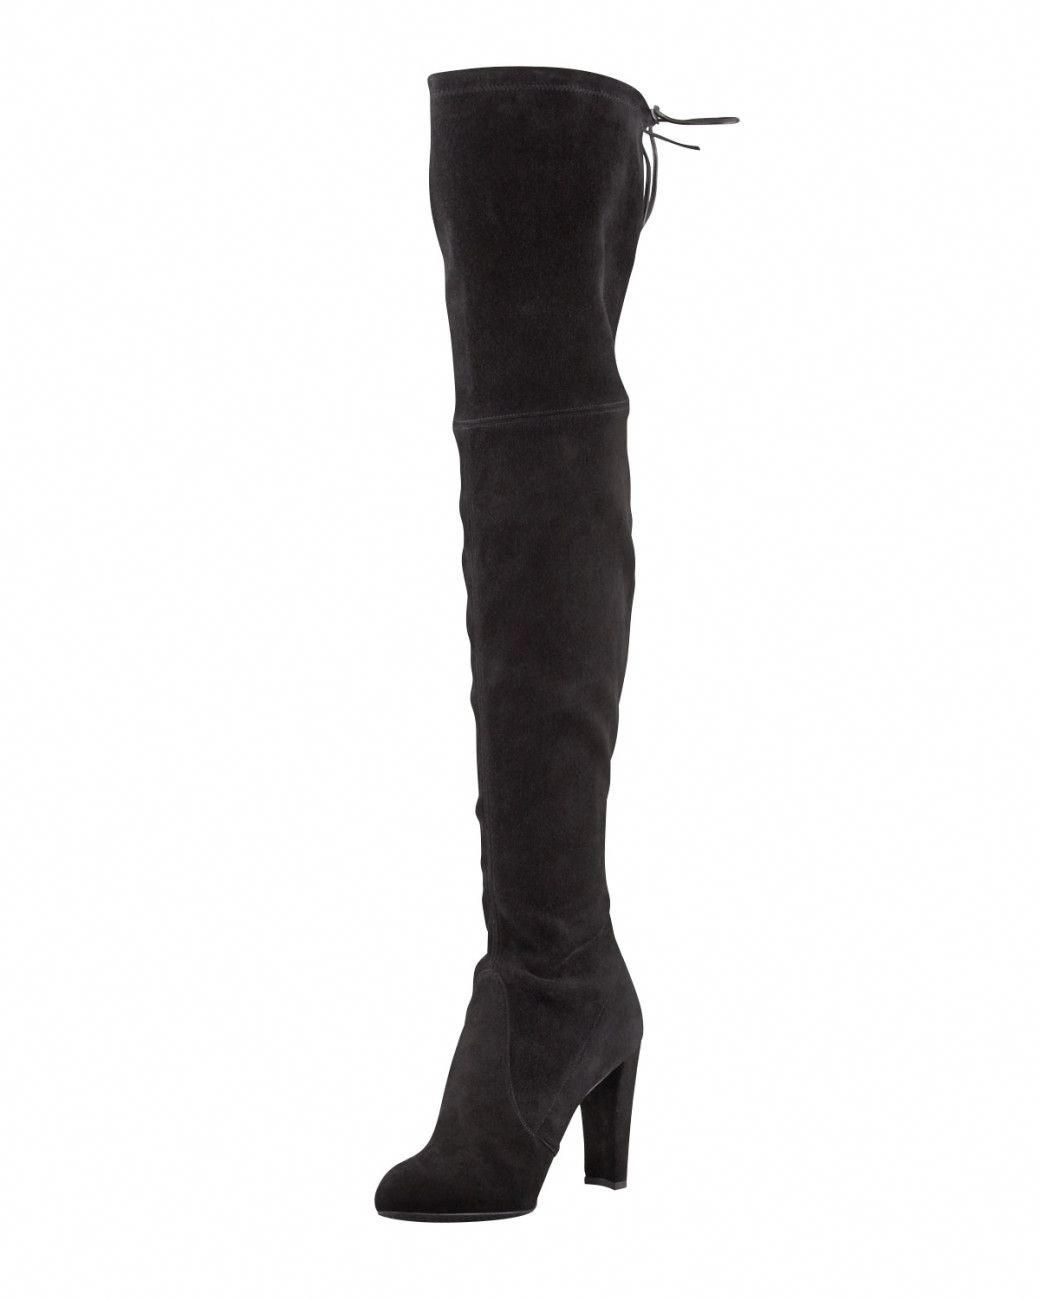 0864b82d7c56 Stay one step ahead of the crowd with Stuart Weitzman s Highland boots.  Boasting this season s